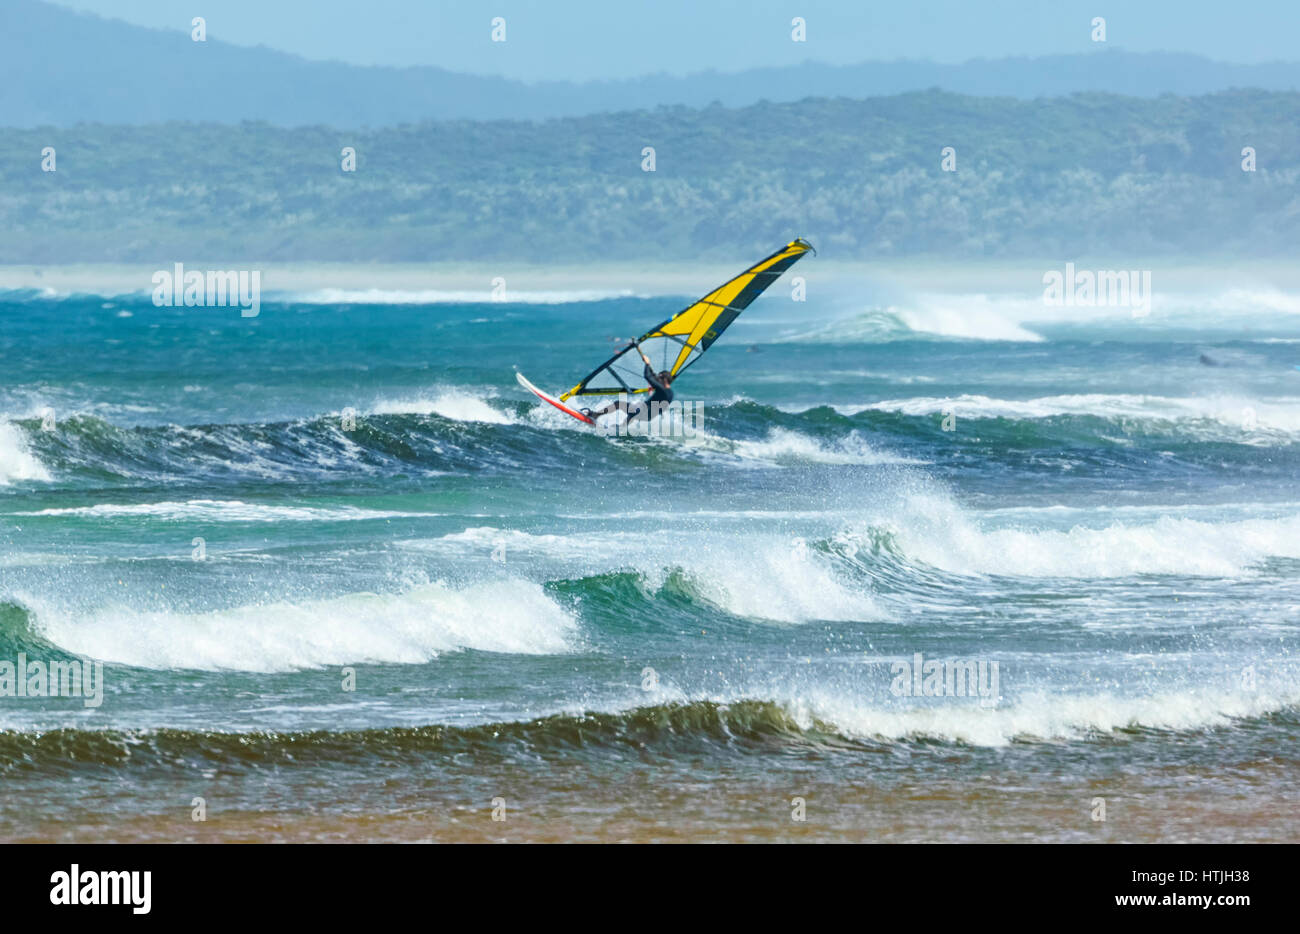 Windsurfer surfing in heavy seas with large waves at Seven Mile Beach, Gerroa, Illawarra Coast, New South Wales, - Stock Image